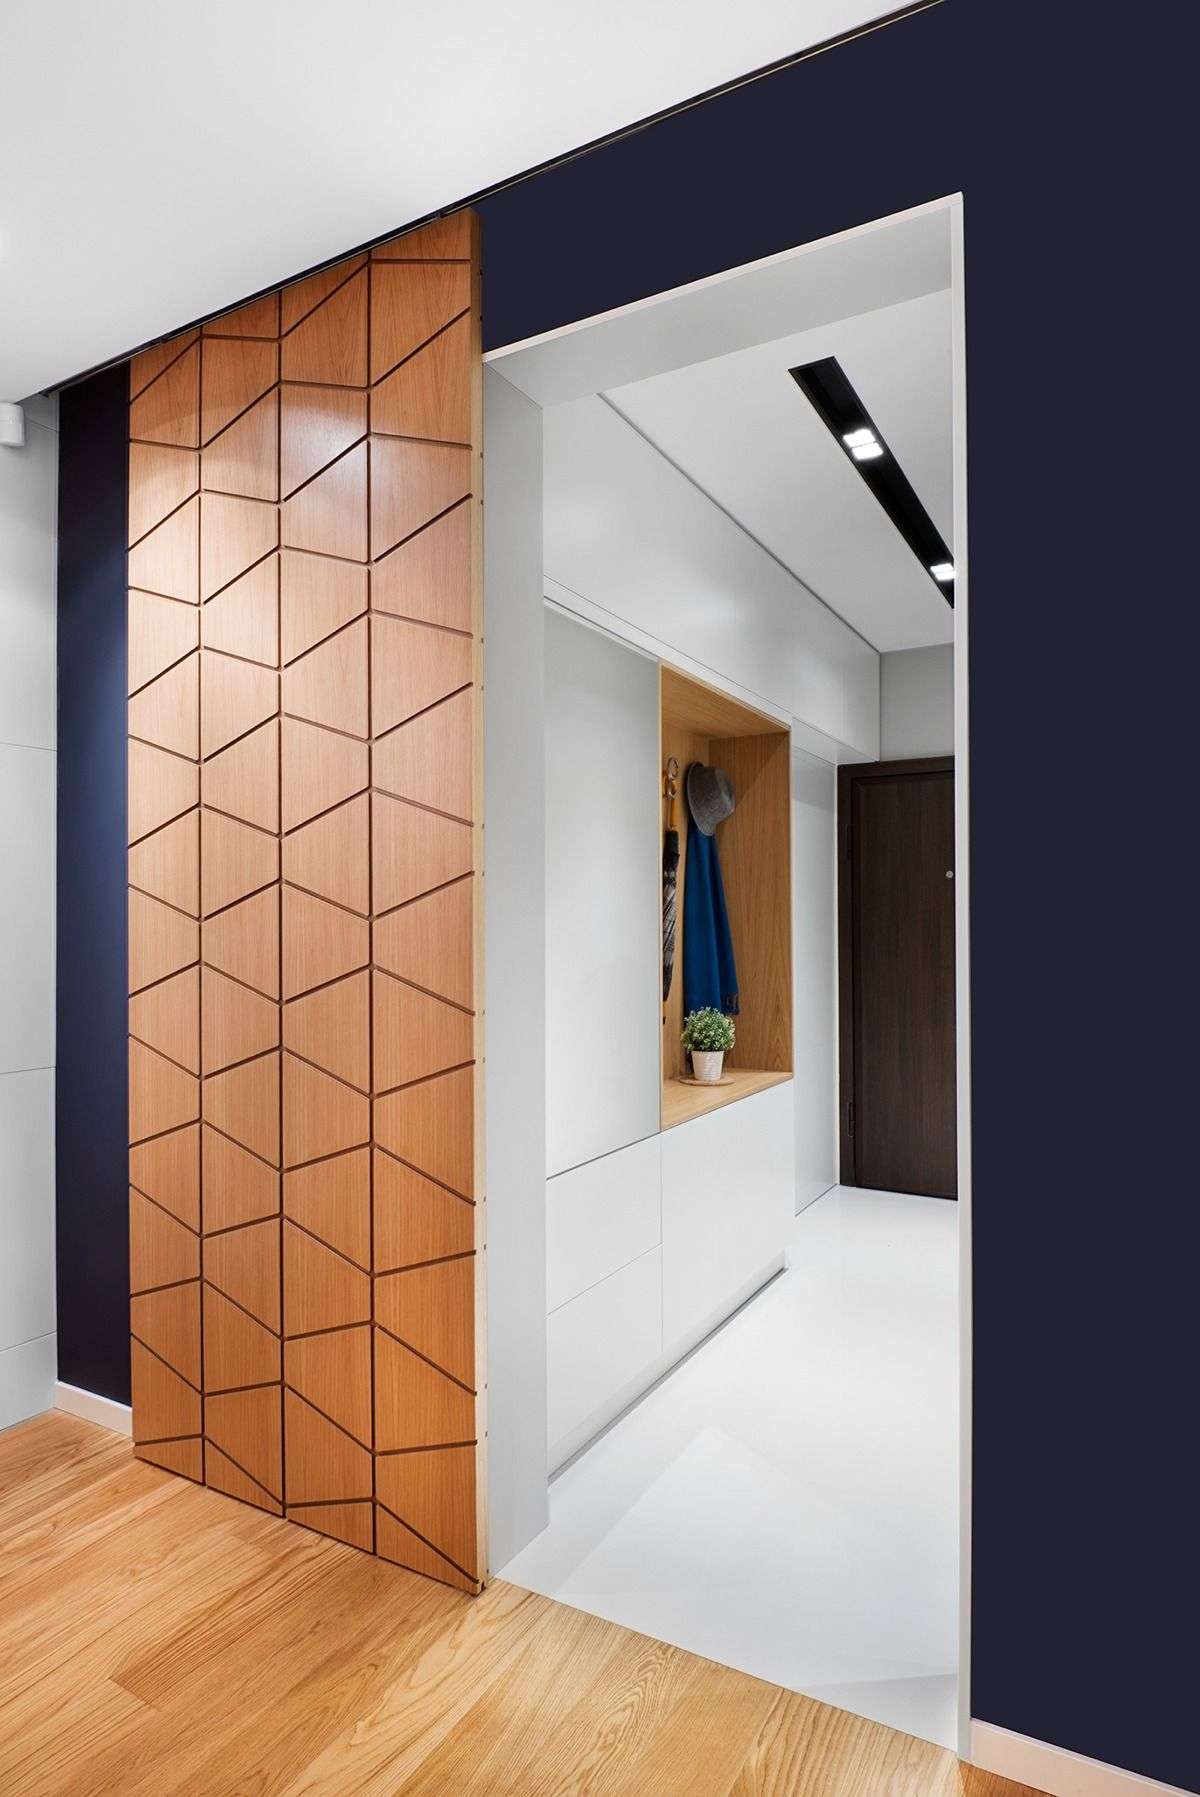 Modern Interior Doors Ideas 14: A Mid-Century Inspired Apartment With Modern Geometric